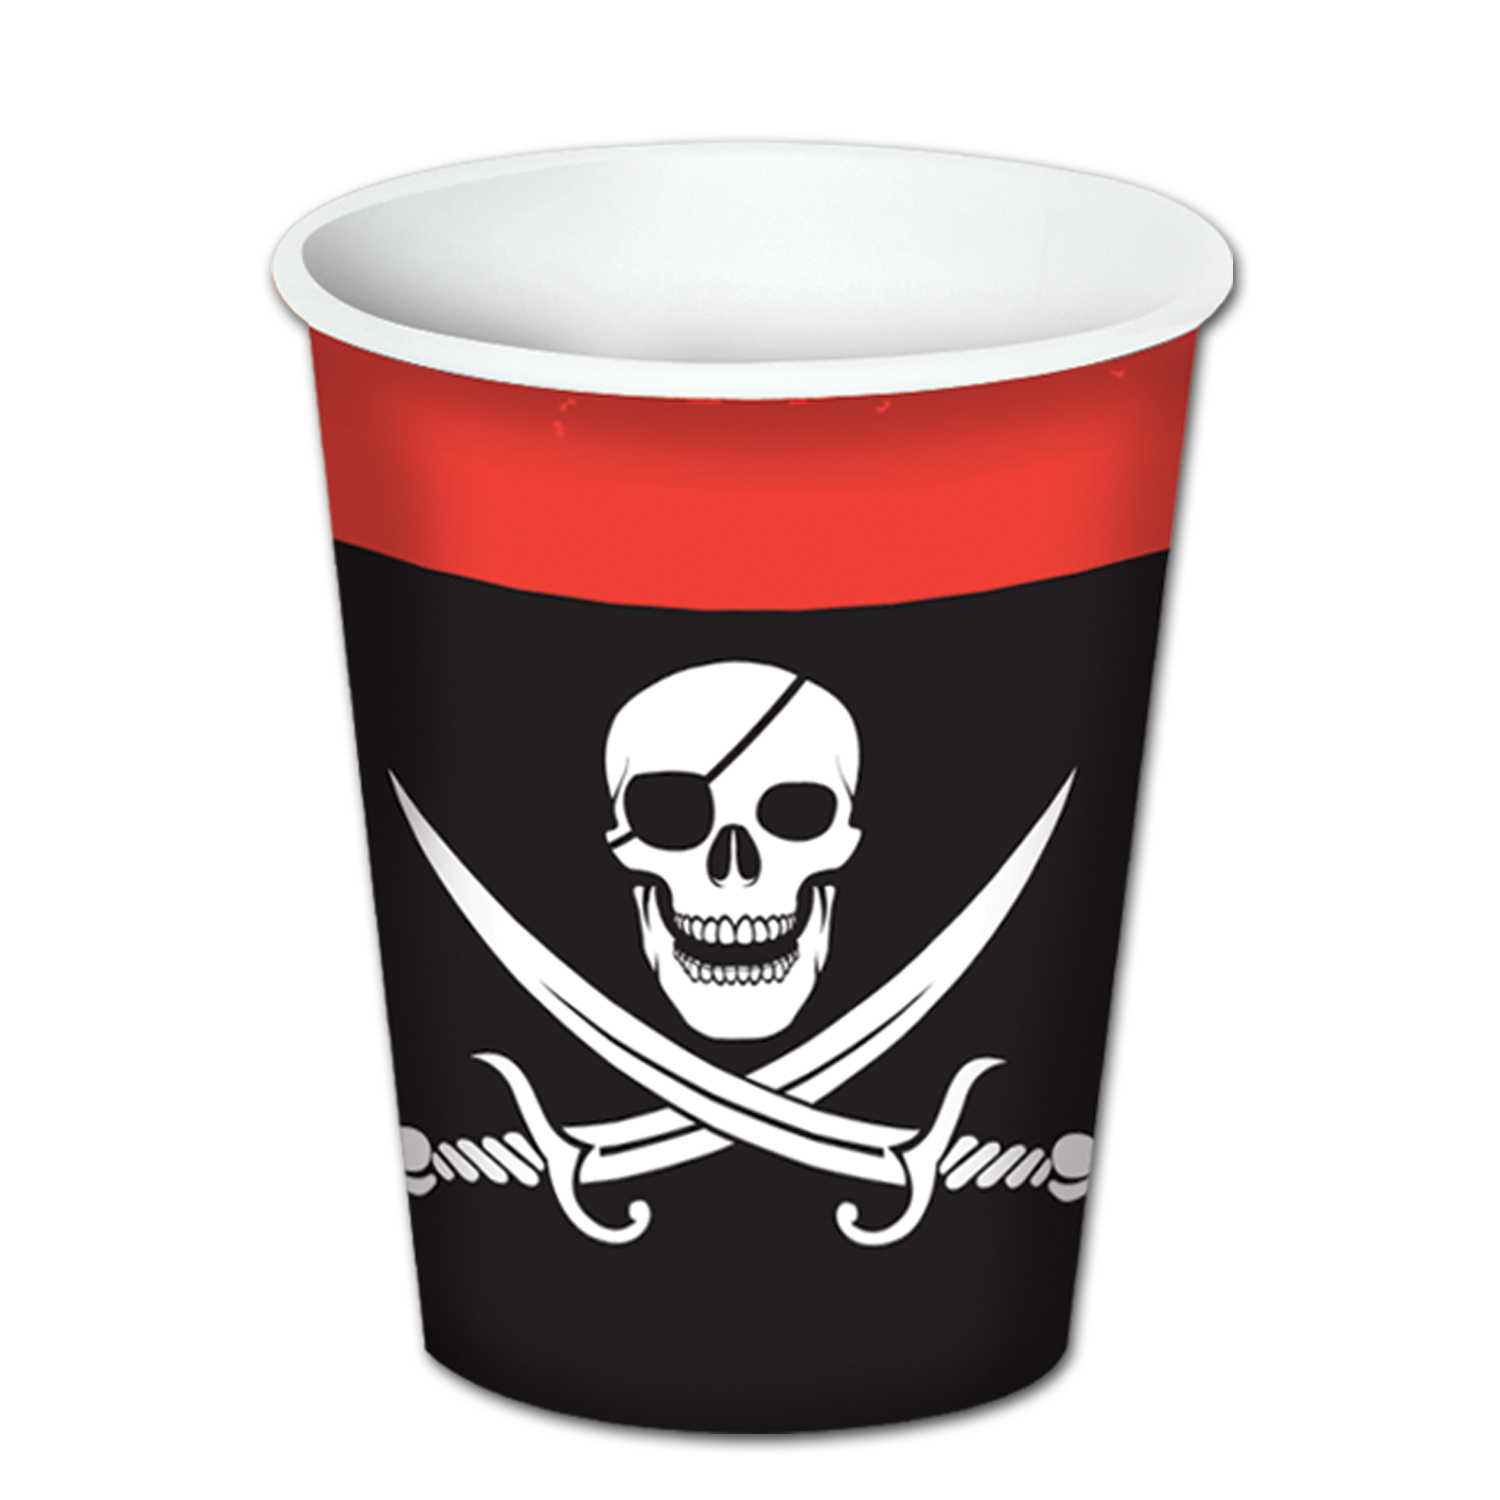 Pirate Beverage Cups (Pack of 96) Pirate Beverage Cups, new years eve, halloween, pirate, wholesale, inexpensive, bulk